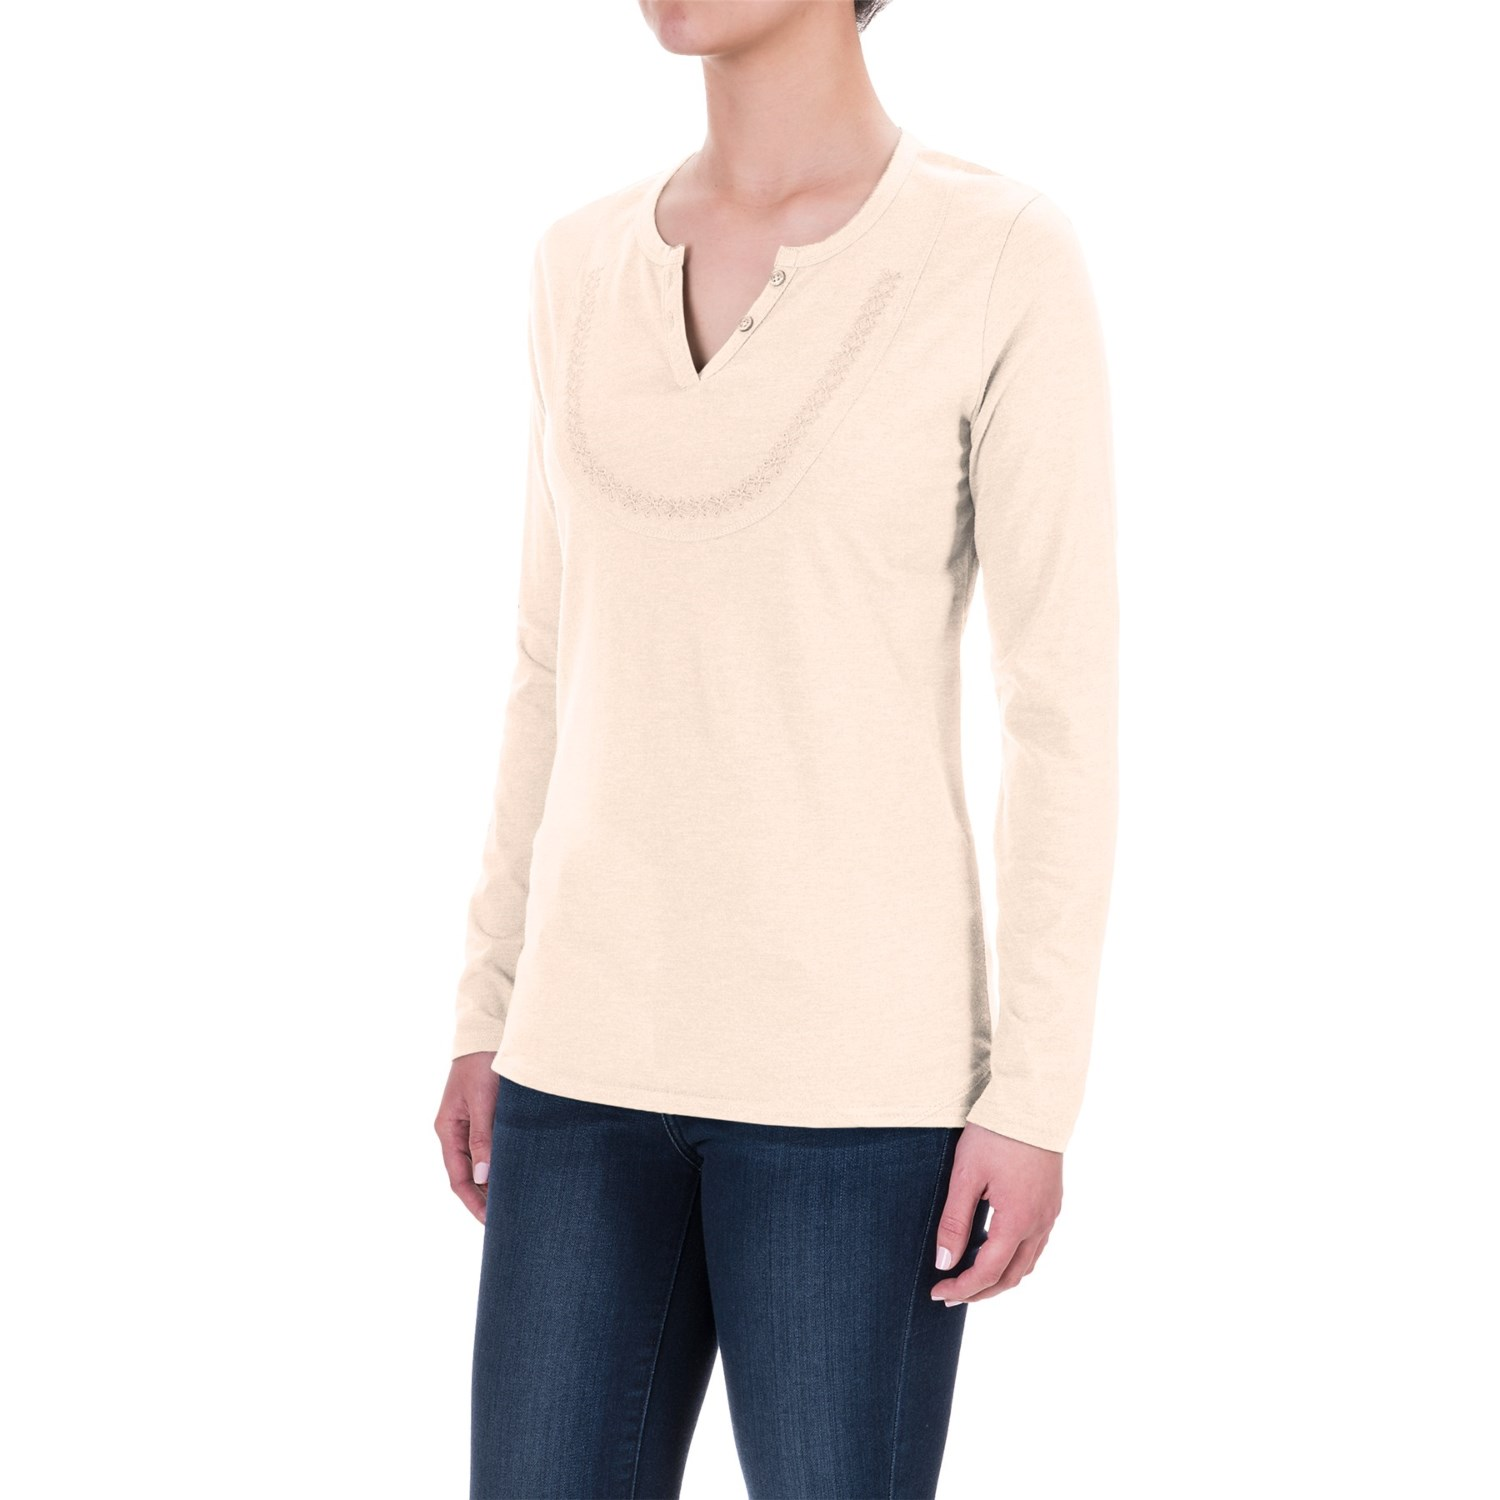 At cuttackfirstboutique.cf we aim to please and offer a wide variety of women's long sleeve shirt styles, including dress shirts, Oxford shirts, denim, golf shirts, long sleeve t-shirts, v-necks, crew necks, double layers, hoodies, and more at significantly low prices.